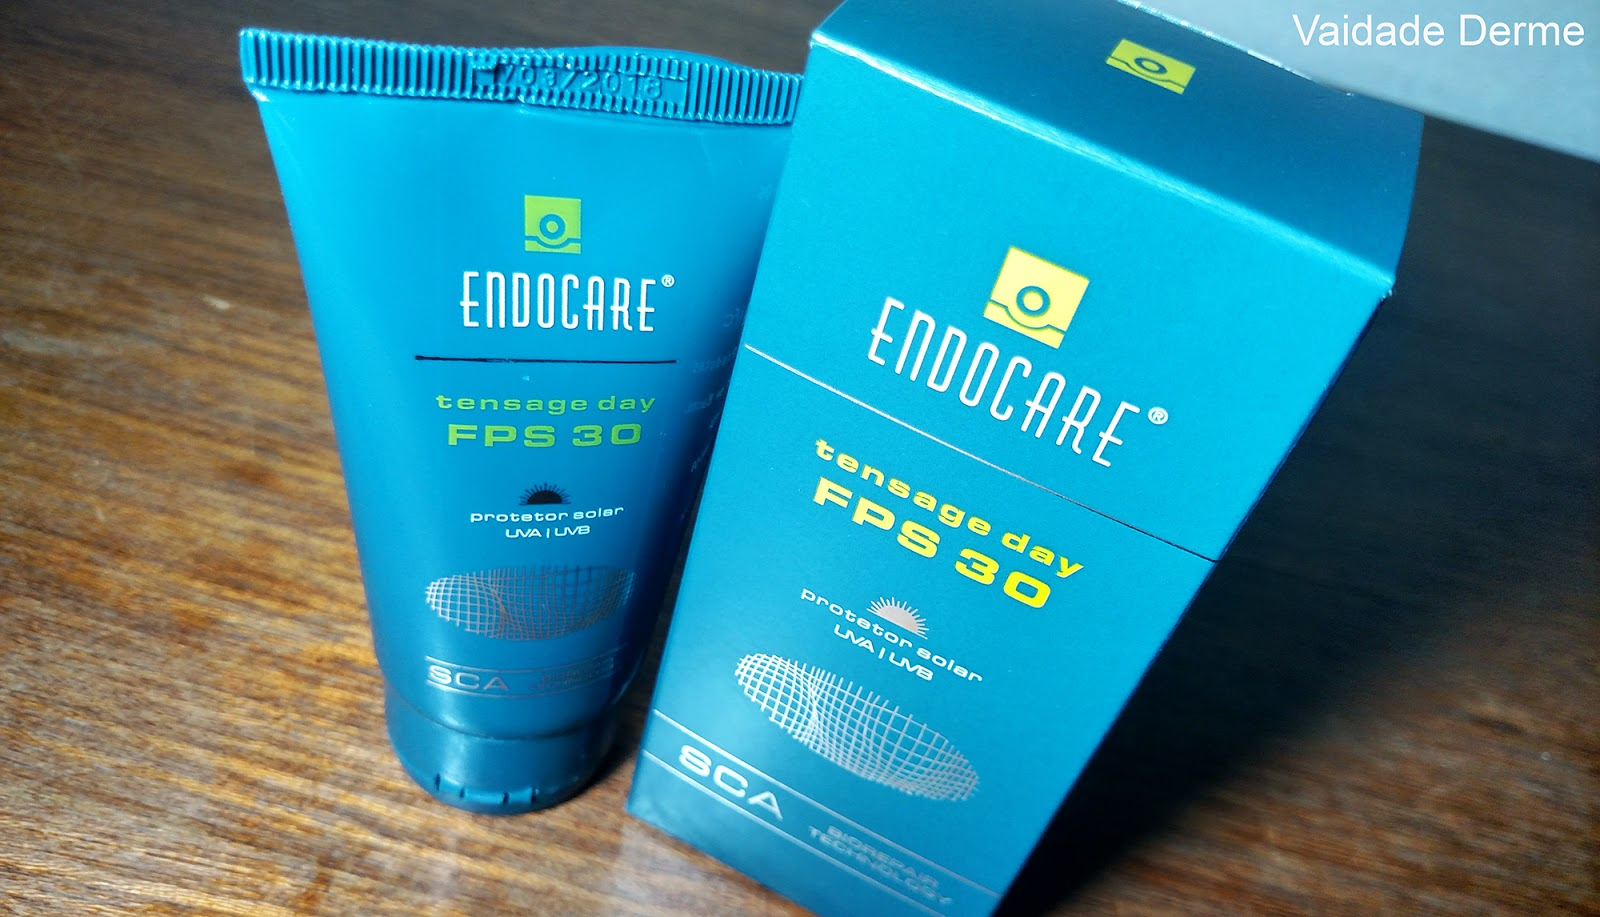 Endocare Tensage Day FPS 30